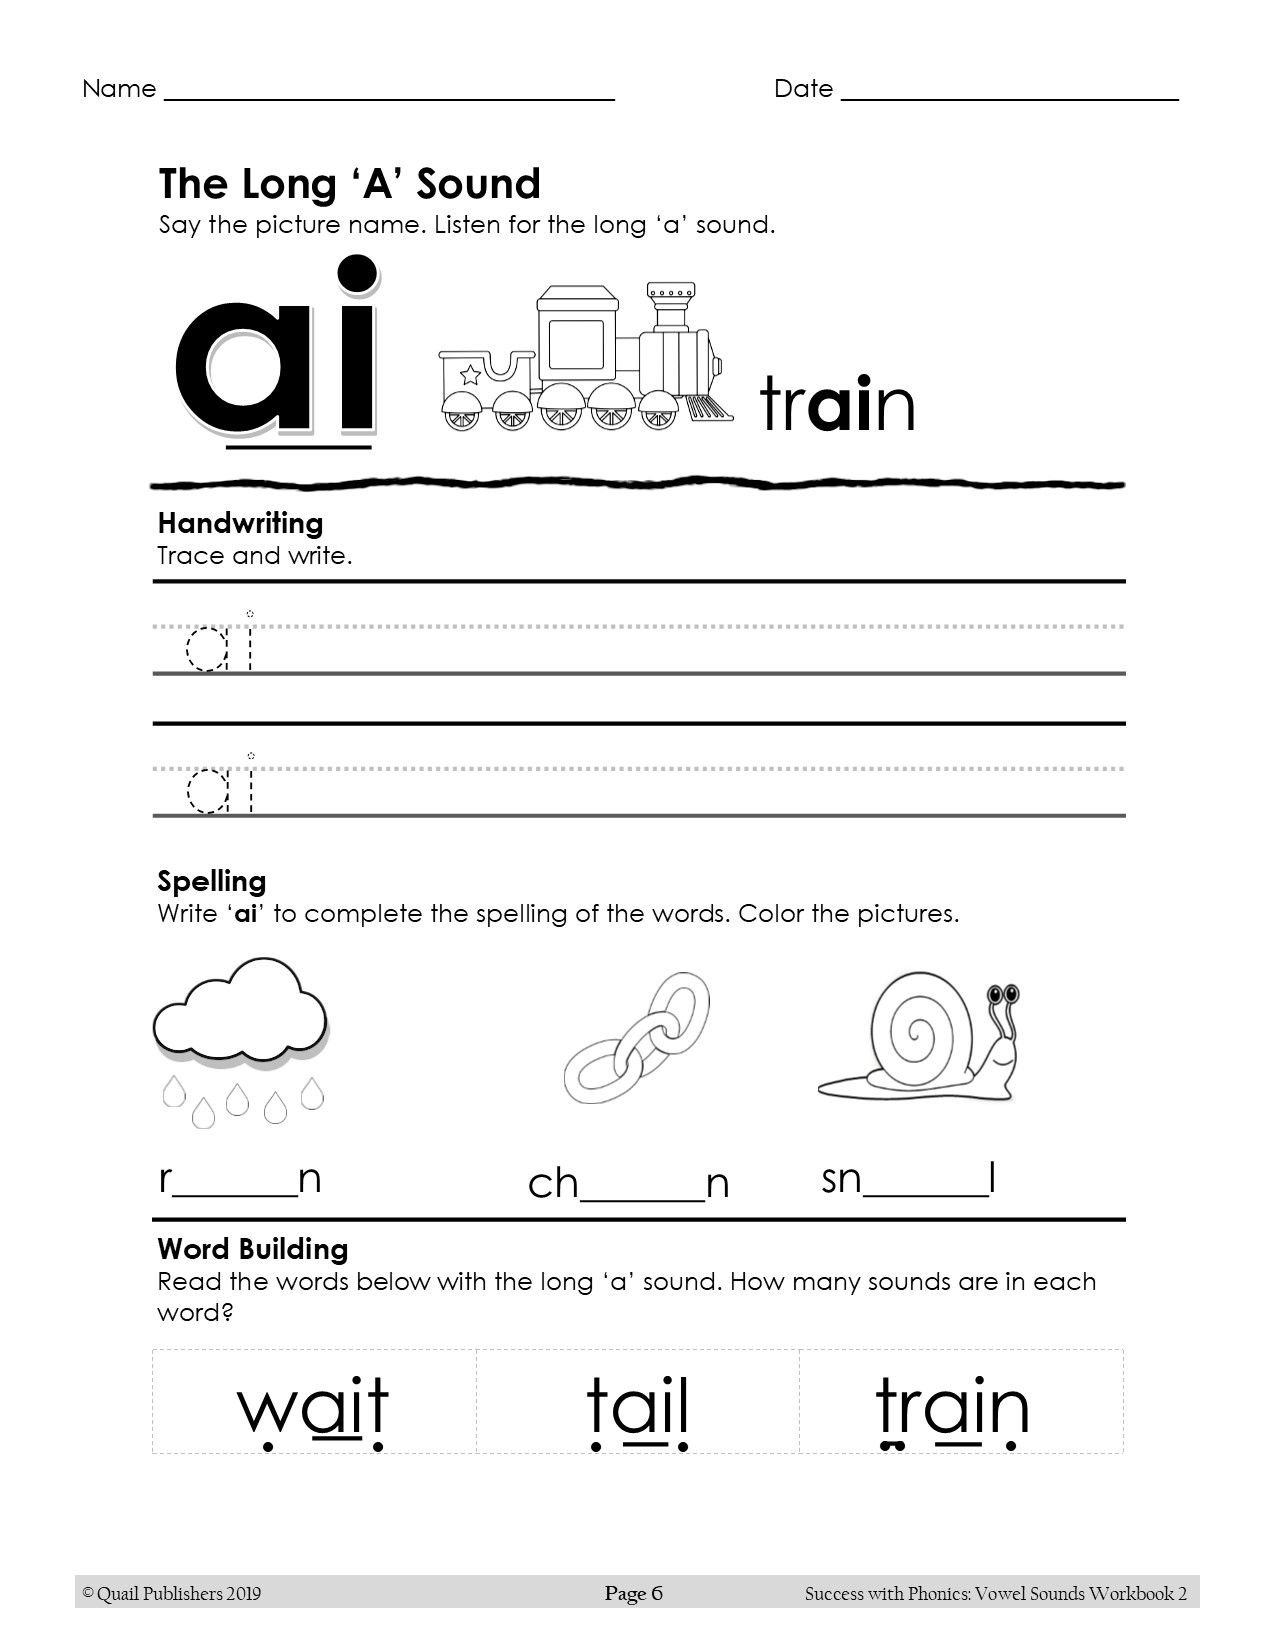 Great Activities To Learn The Ai Spelling Of The Long A Sound In The Success With Phonics Vowel Sounds Workbook 2 Phonics Phonics Worksheets Vowel Sounds [ 1650 x 1275 Pixel ]